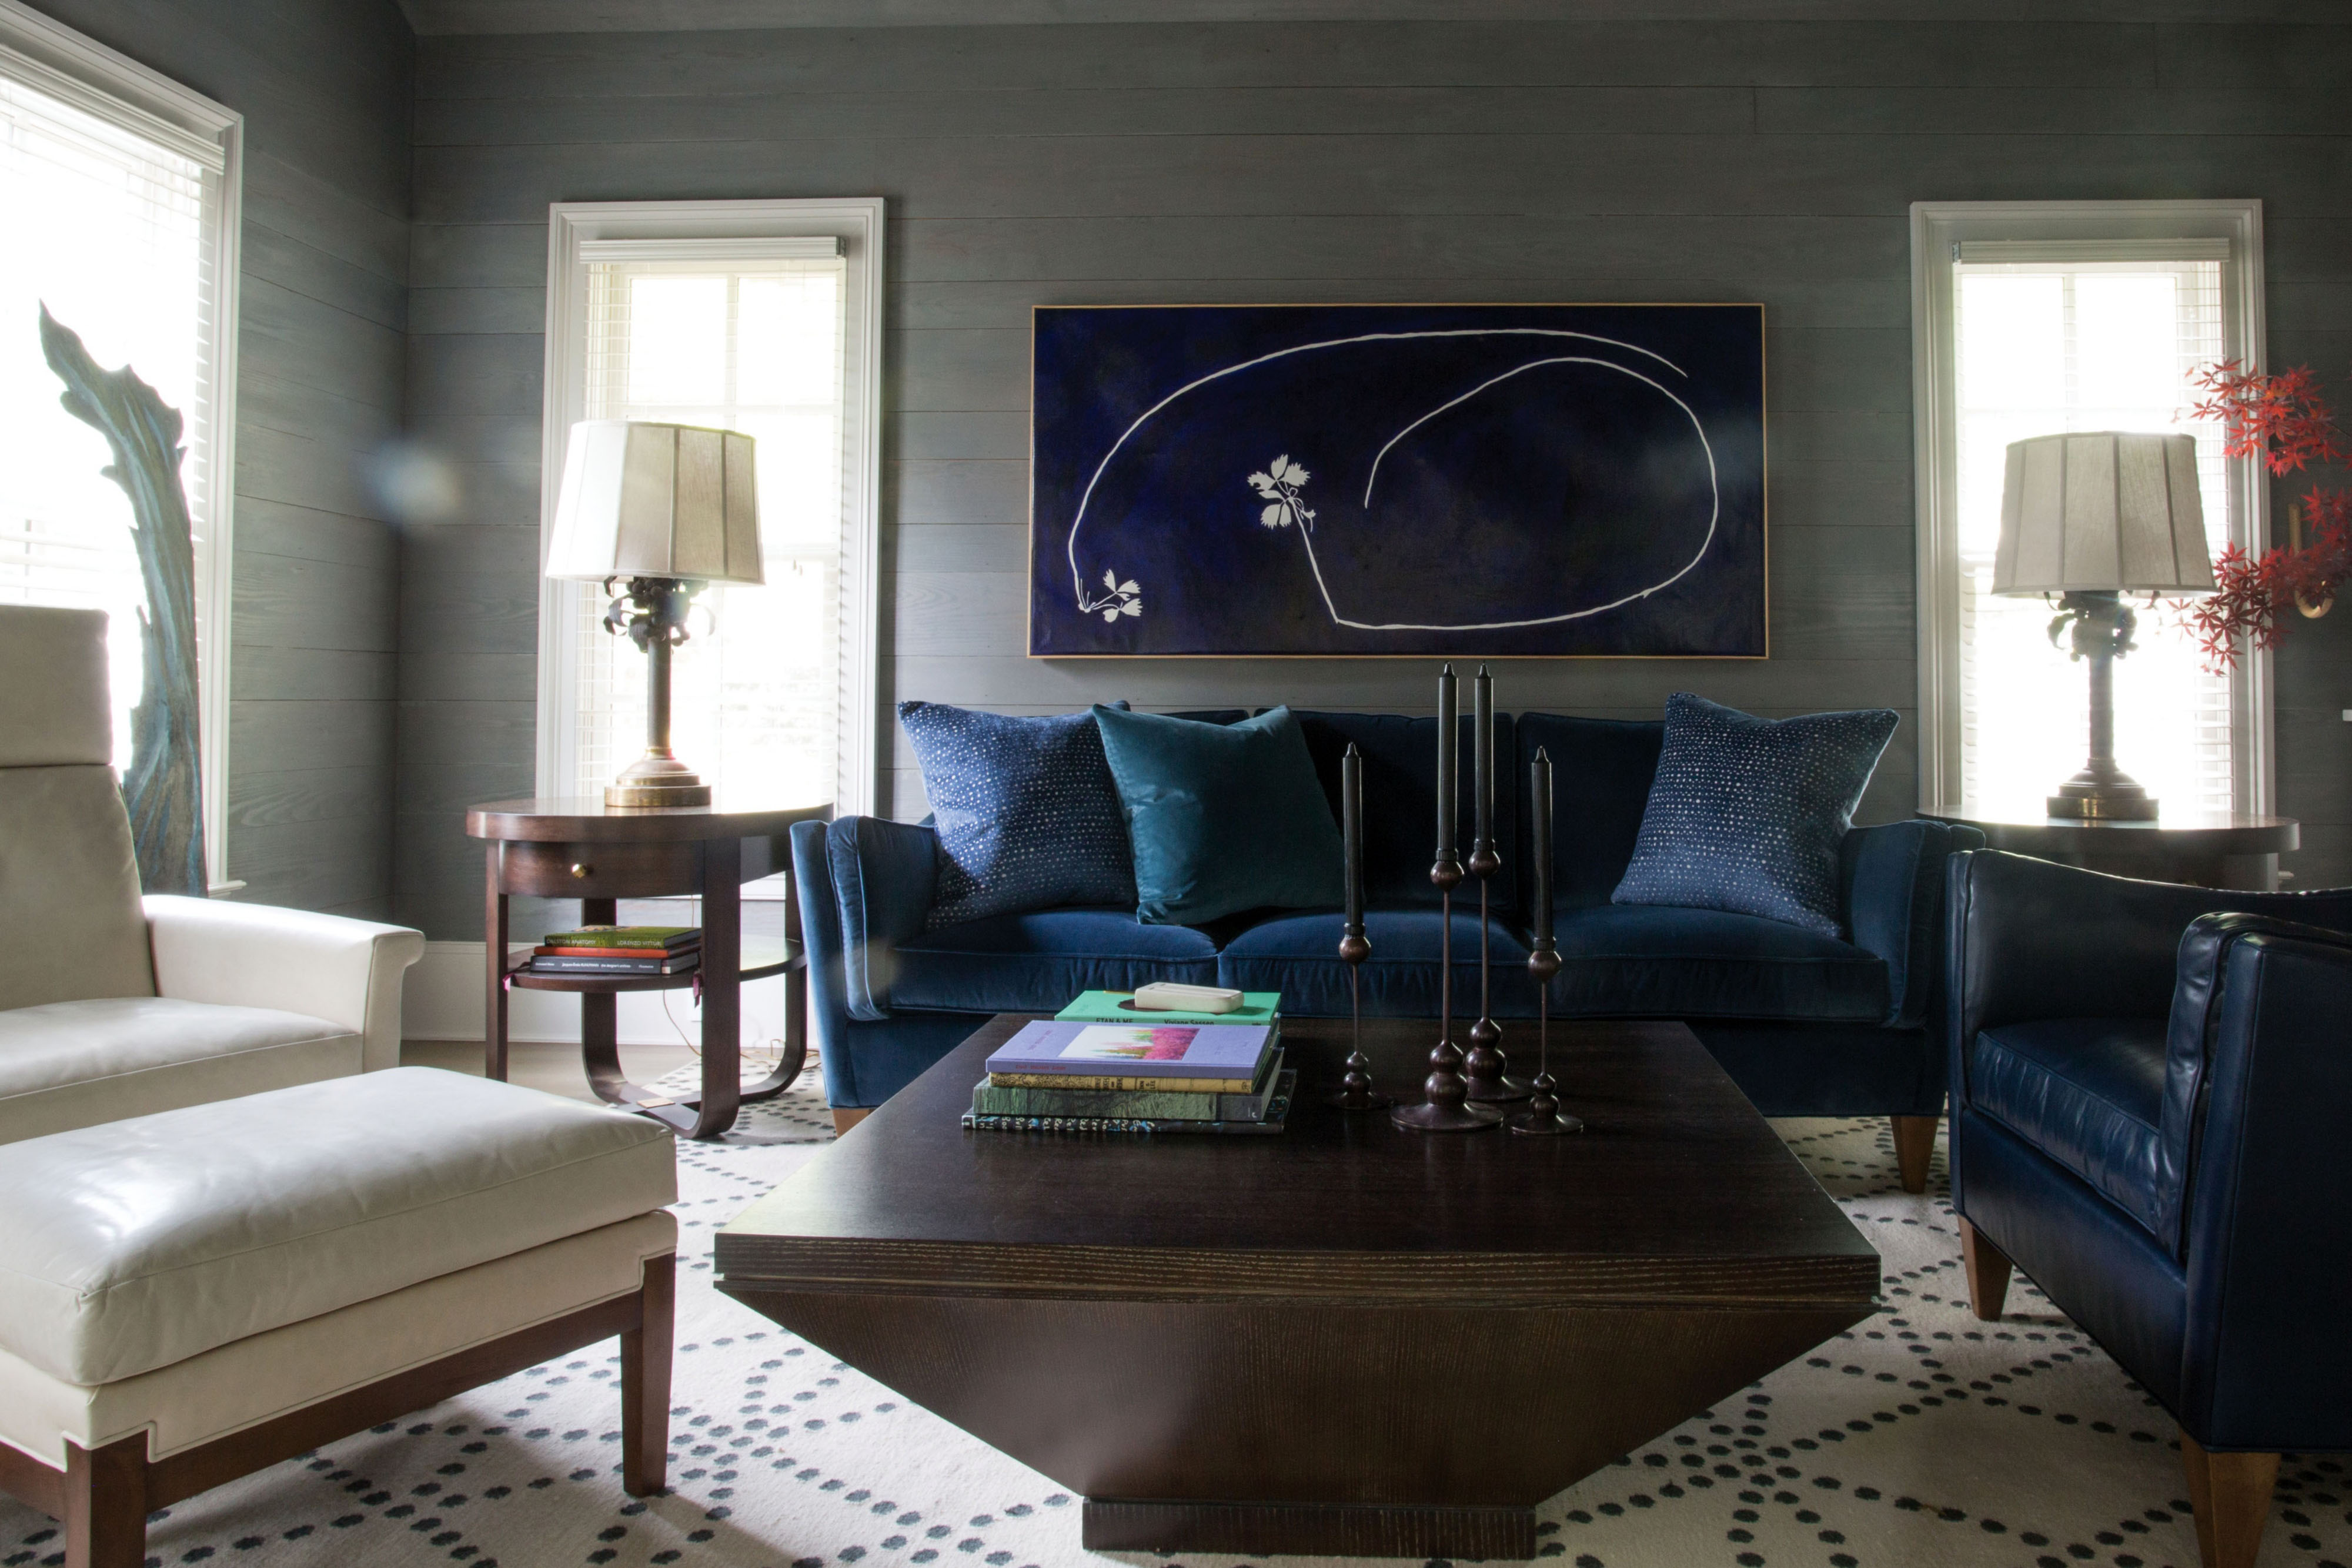 """From azure to indigo, dynamic shades expand a design trend toward """"moody blues."""""""